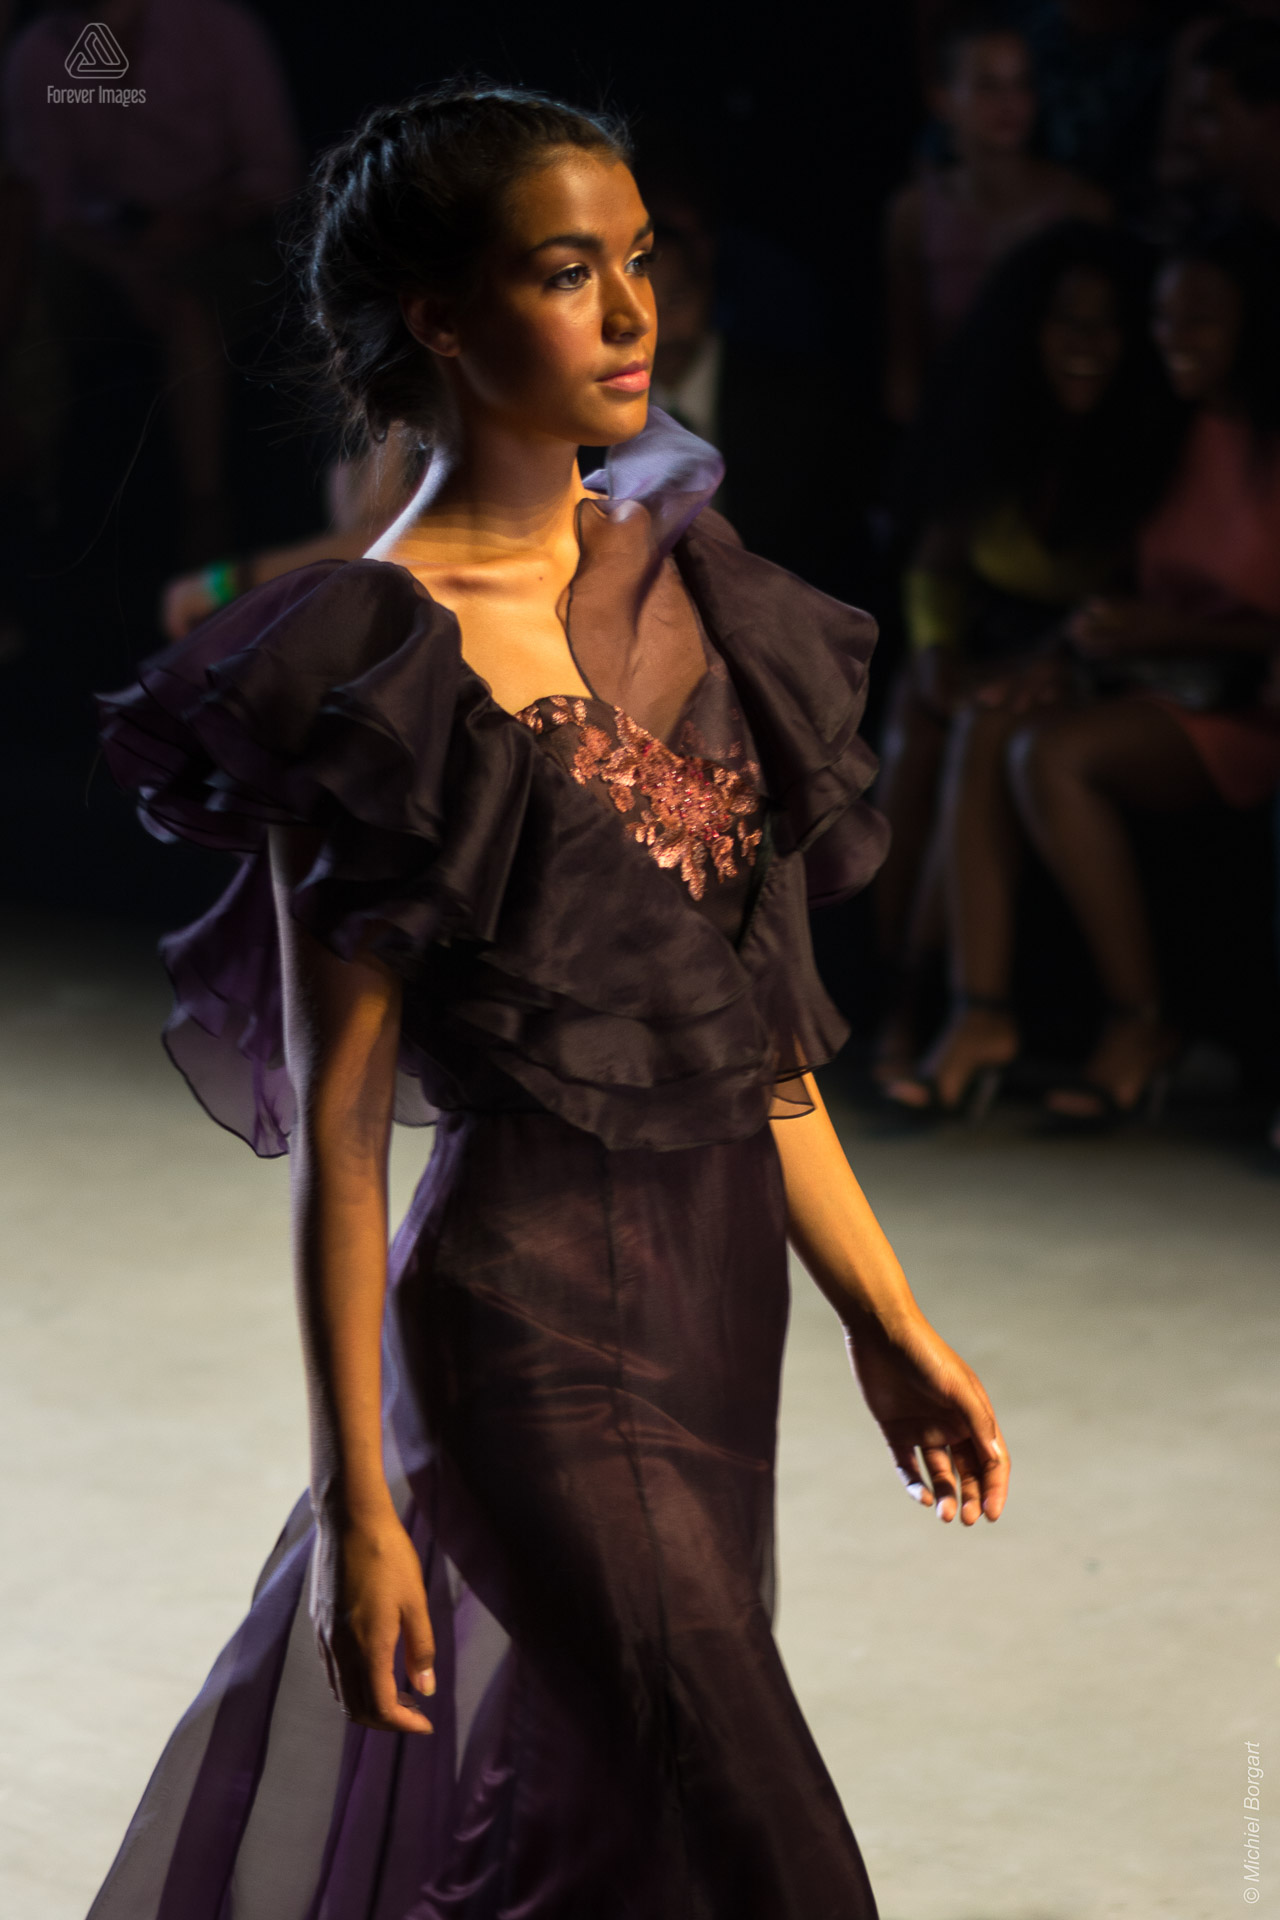 Fashion photo model in dark purple dress during Amsterdam Fashion Week | Fashion Photographer Michiel Borgart - Forever Images.